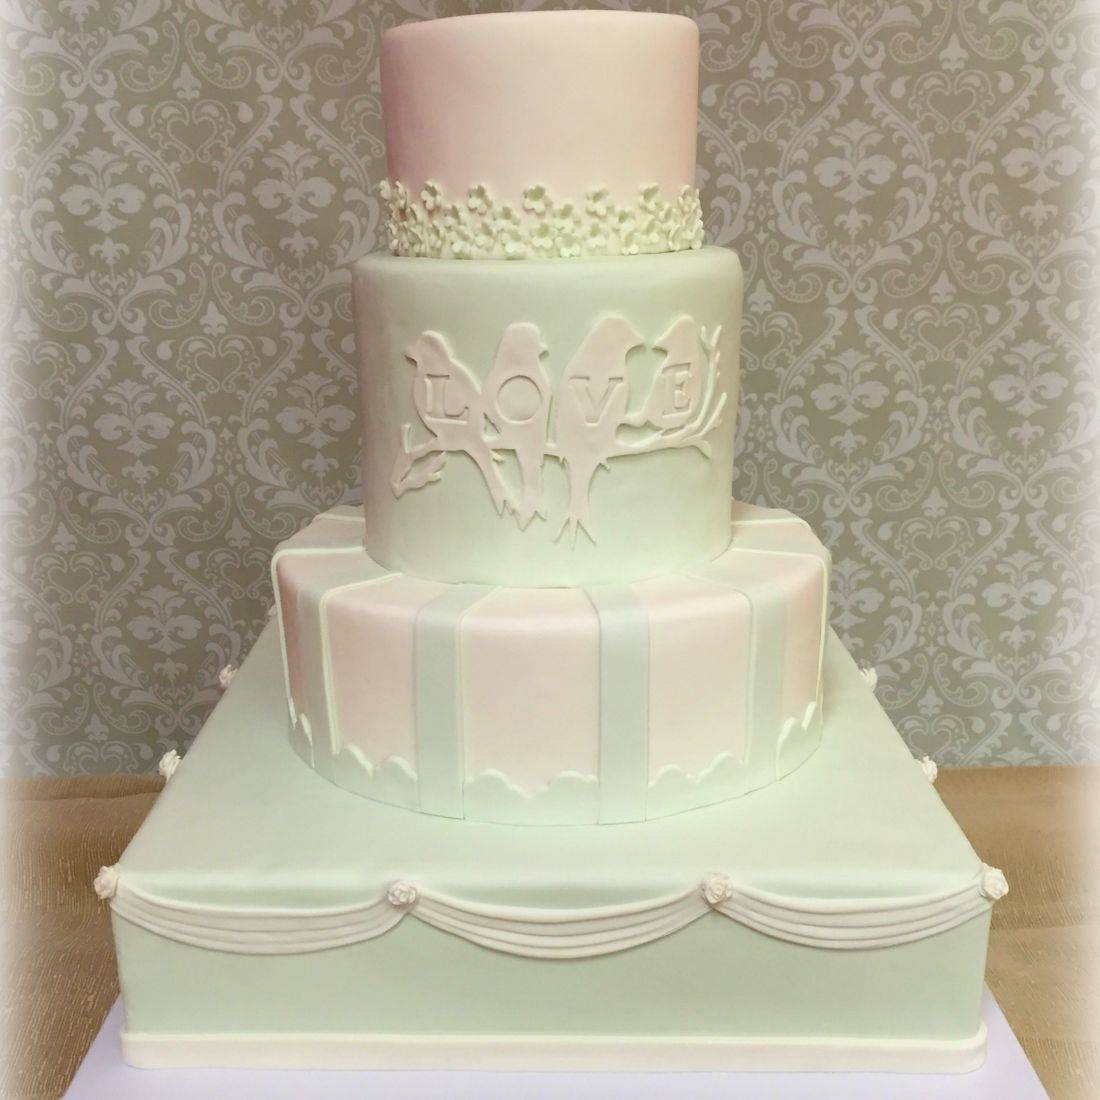 Wedding cake sweet love birds mint green and white flowers